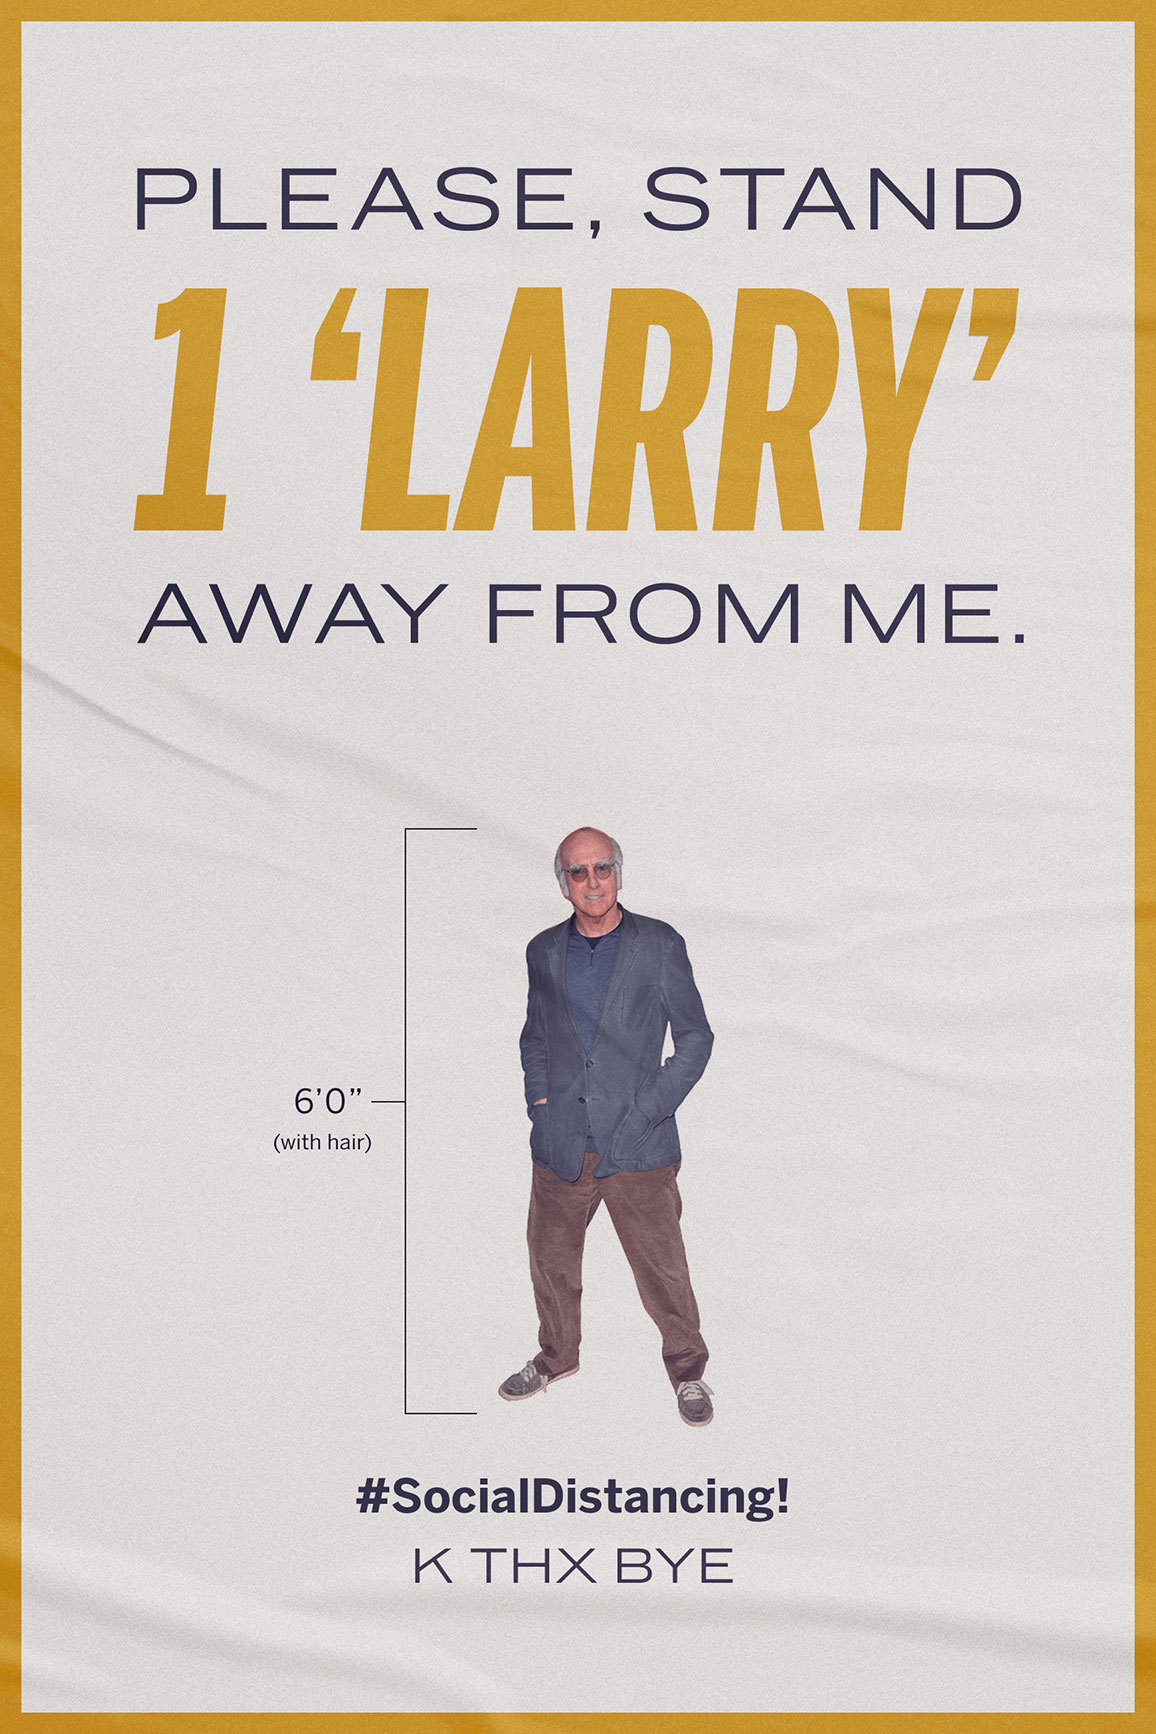 Please Stand 1 'Larry' Away From Me.